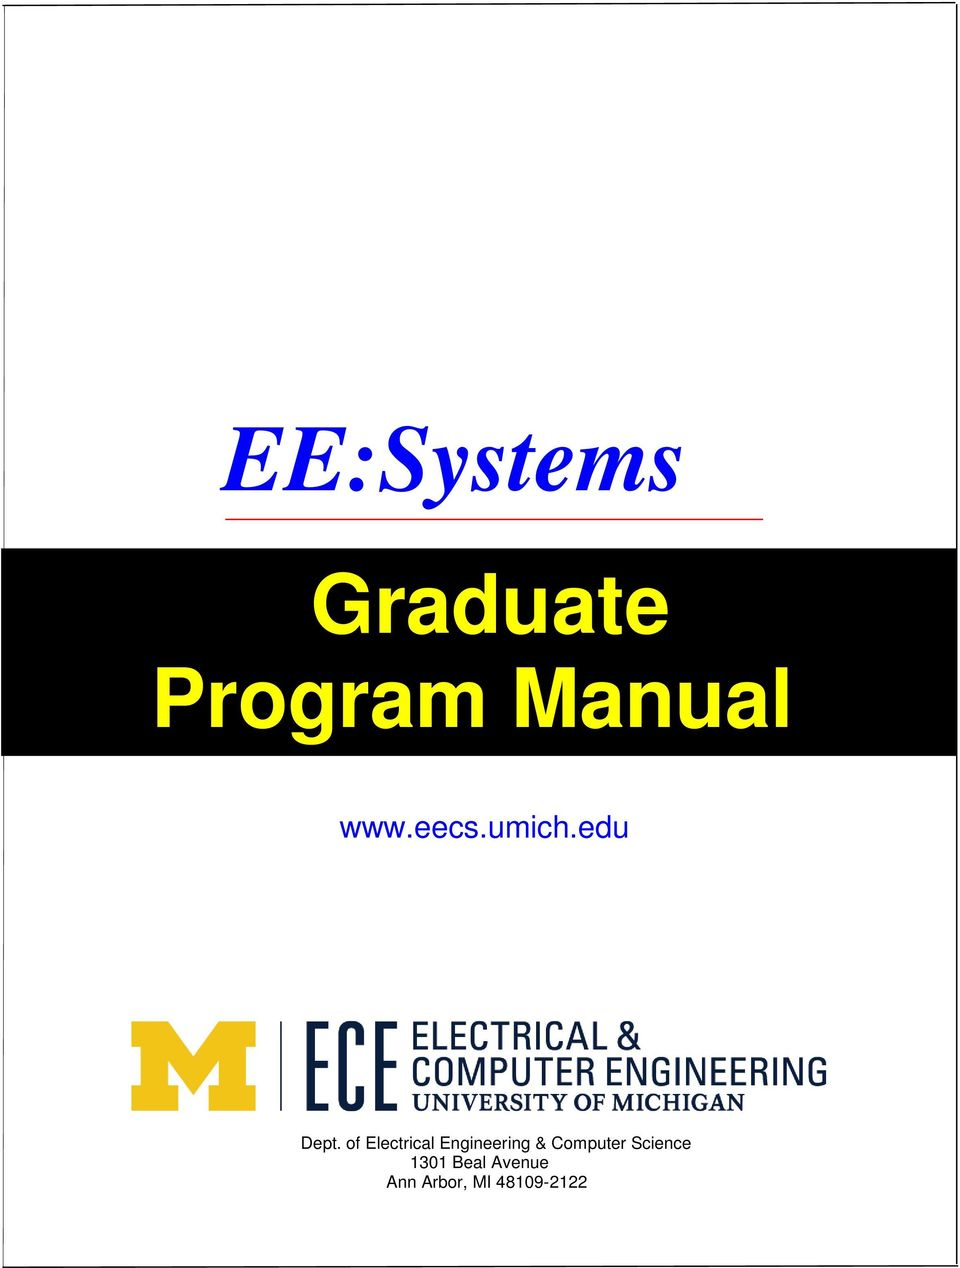 of Electrical Engineering & Computer